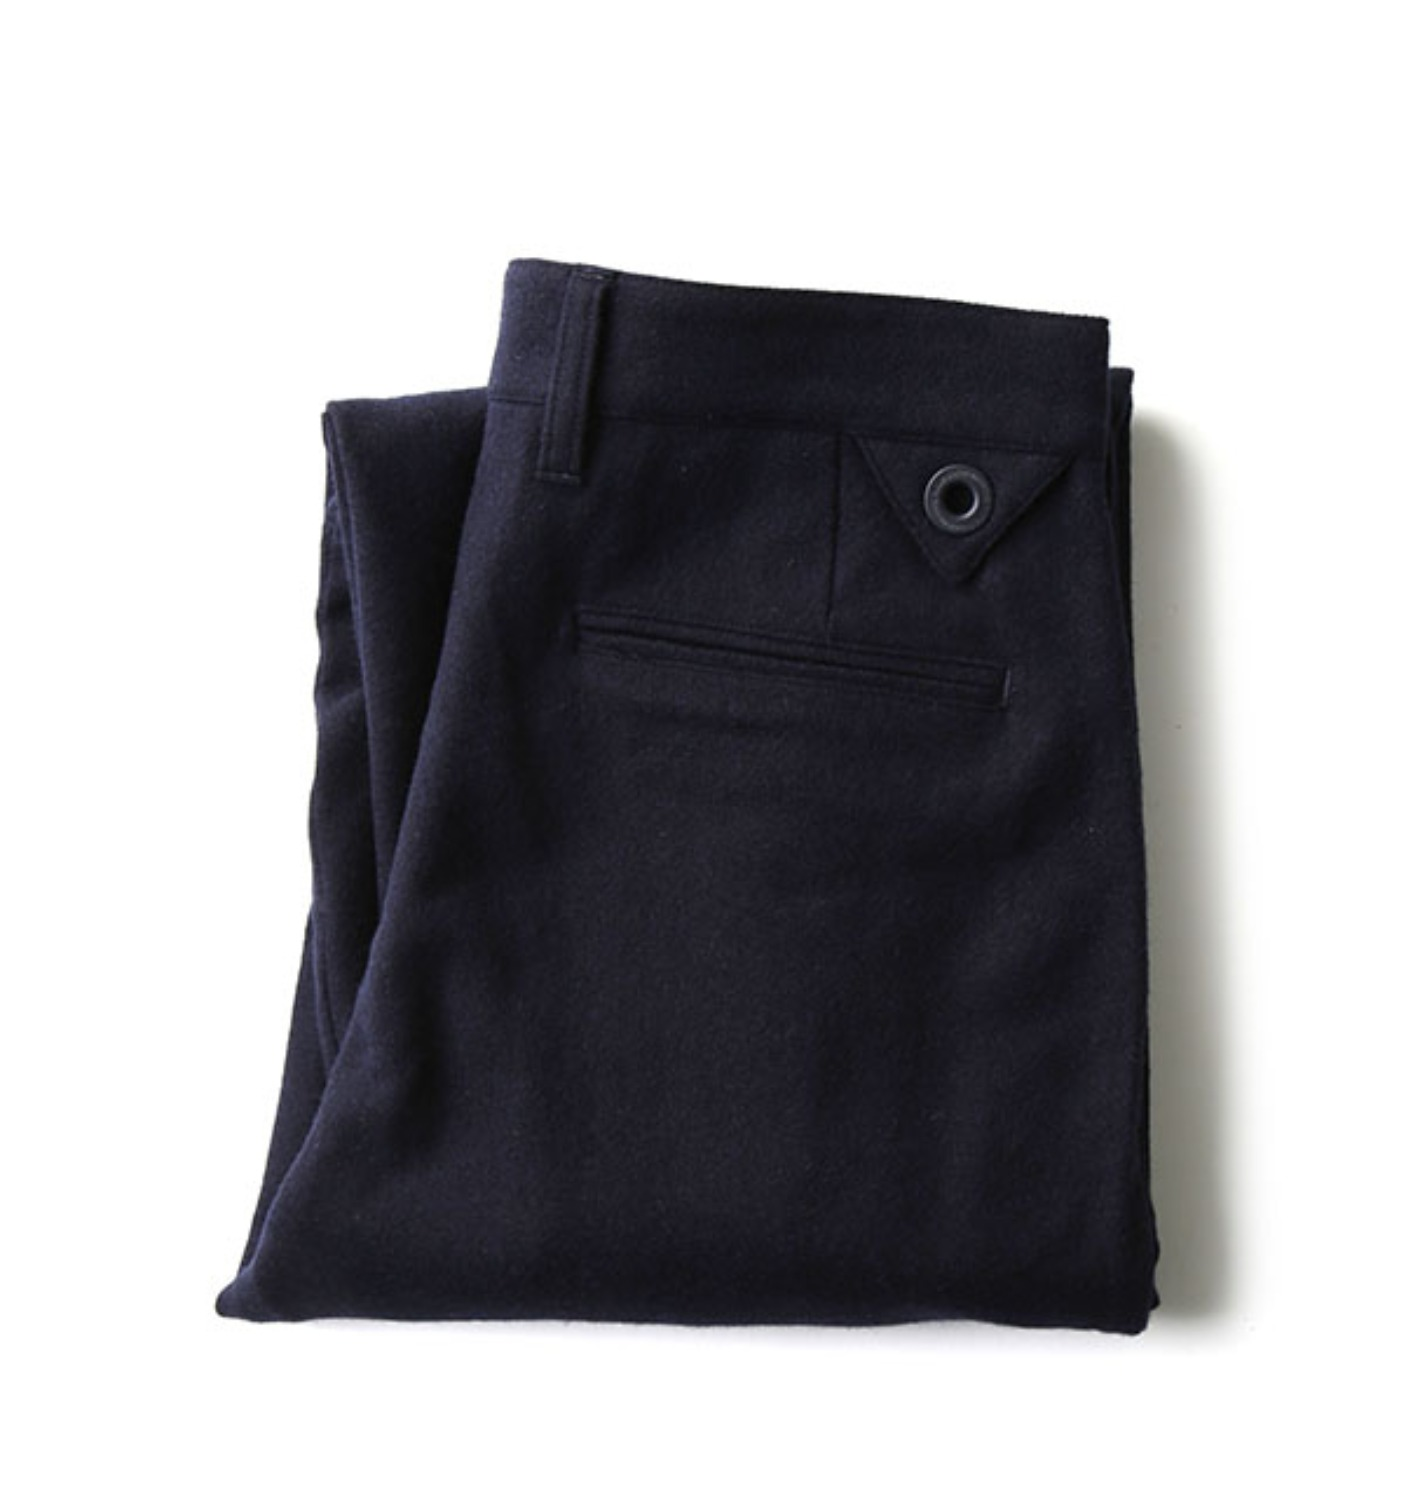 WOOL NYLON FLANNEL 2-TUCK WIDE PANTS NAVY (WL1673415)